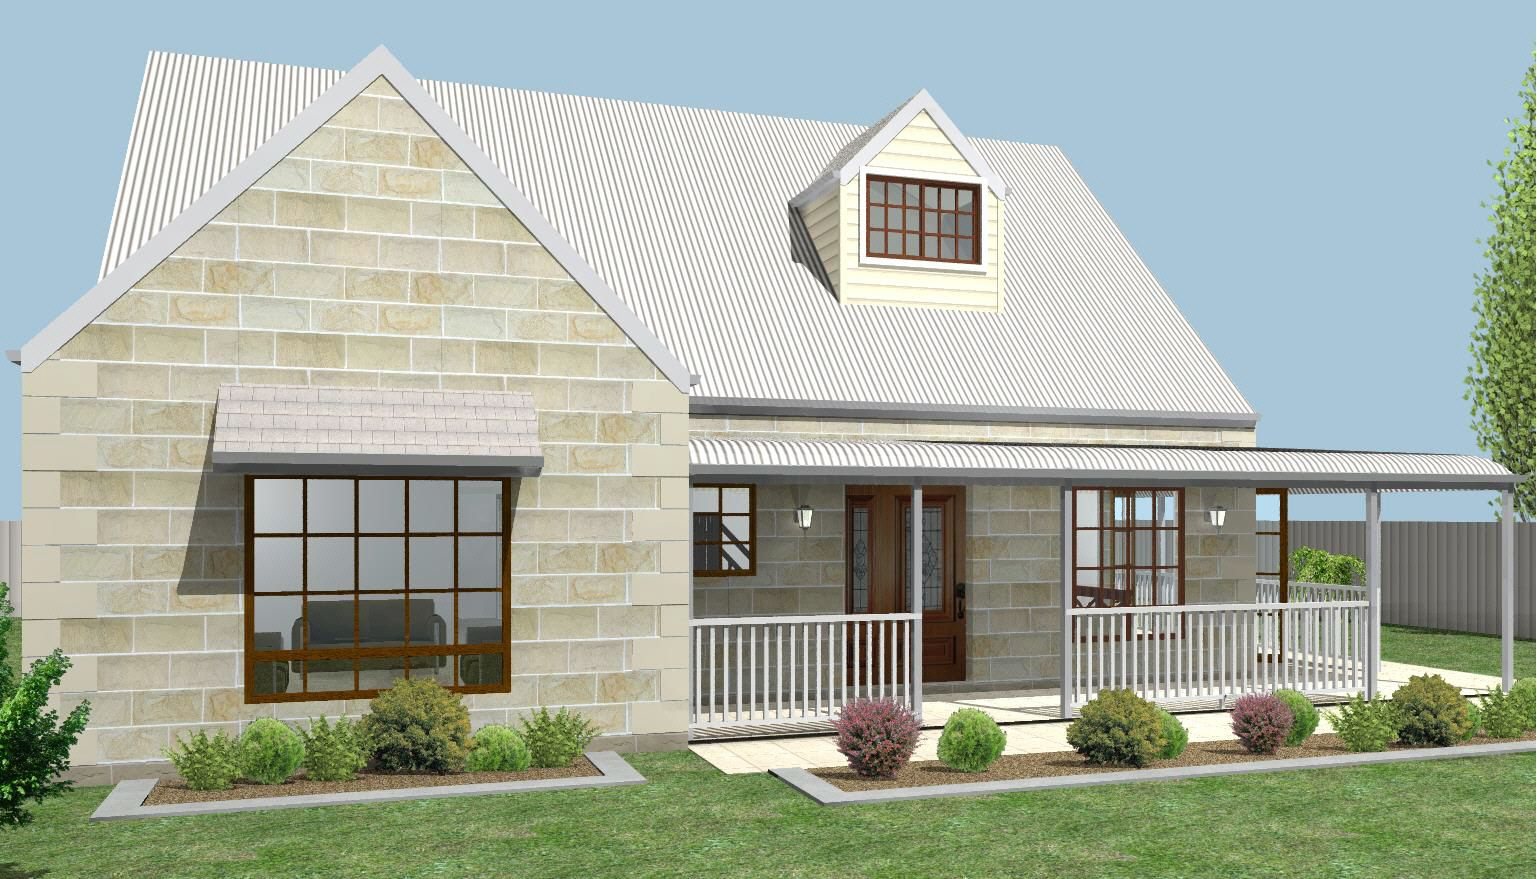 Stone Home Designs: The Botany 4. Visit www.localbuilders.com.au to ...